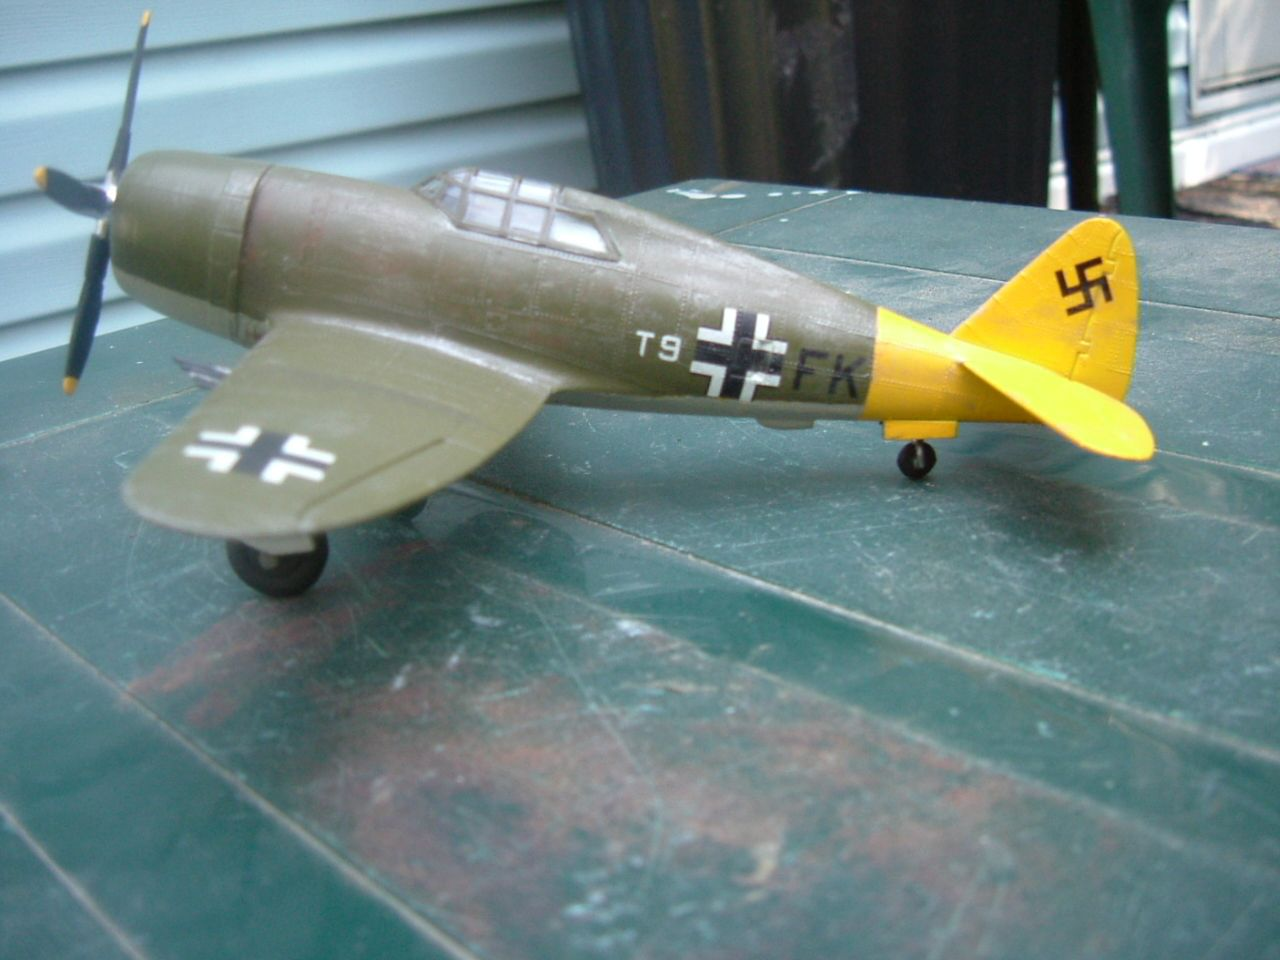 Here's a couple from forum photos-p-47-capturd-germans.jpg